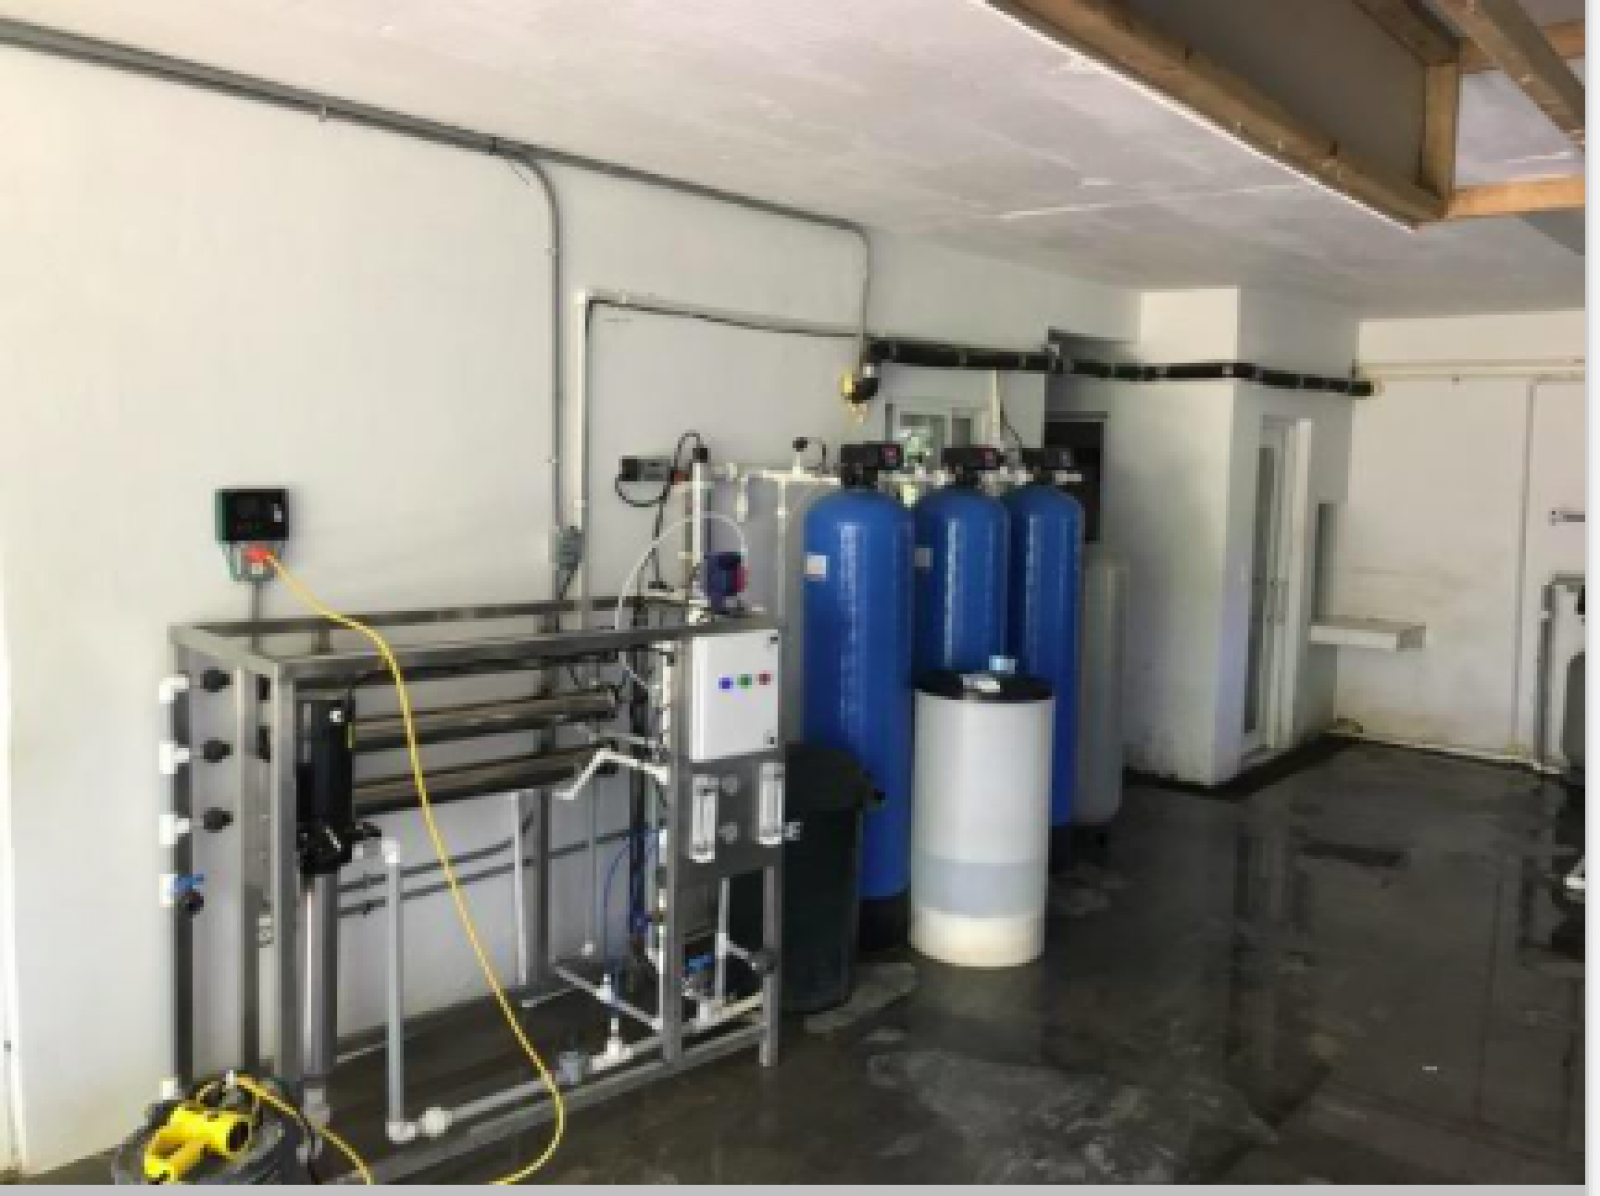 Business opportunity Operating modern facility State-of-the-art reverse osmosis filtration system Purified water business High-tech system \